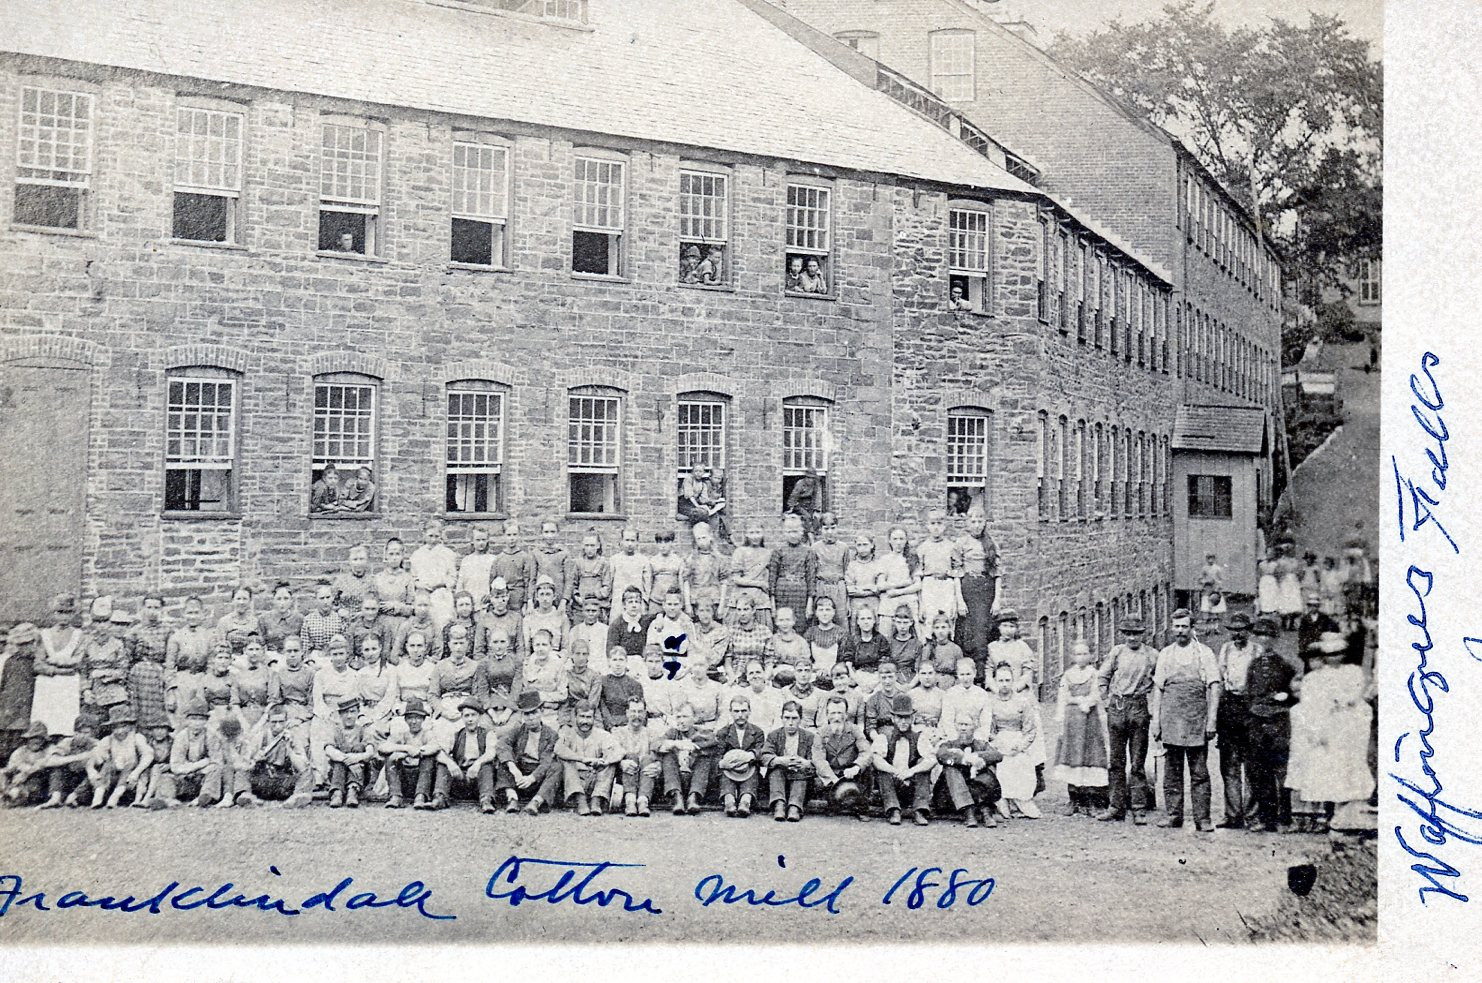 Franklindale Cotton Mill 1880